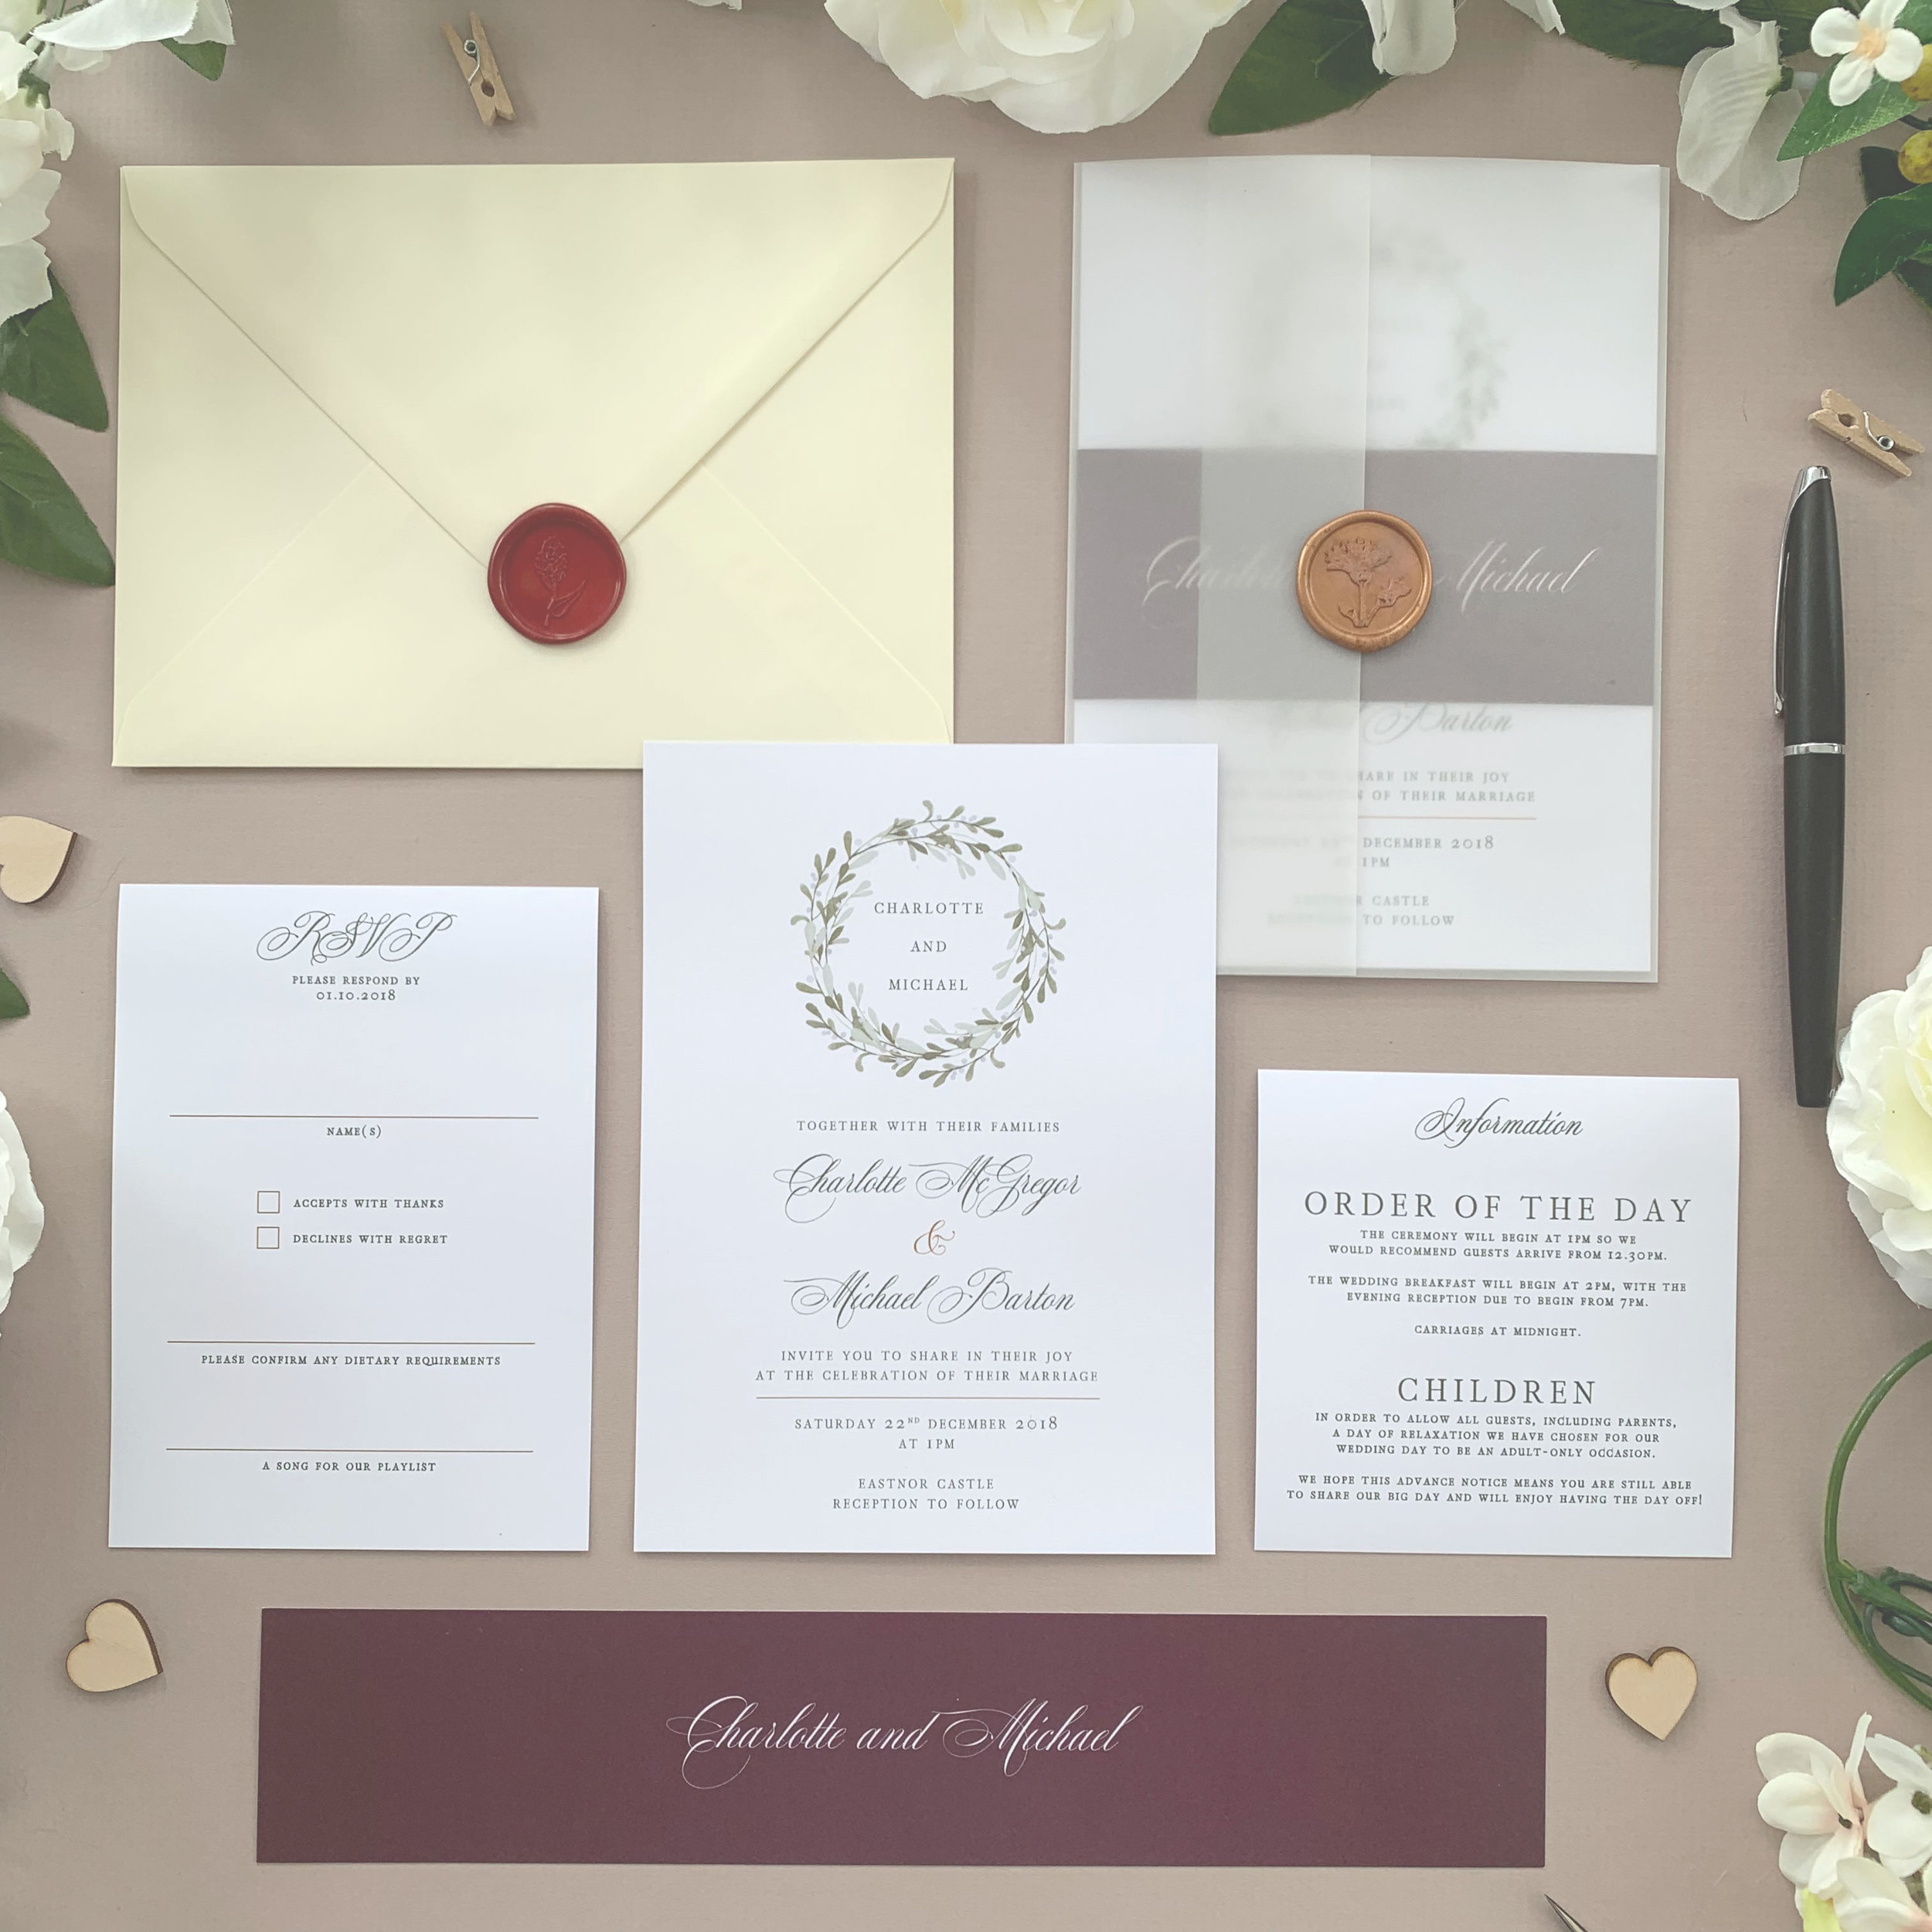 Oxford - Using classical typography alongside a beautiful Christmas wreath, this classic wedding invitation suite comes from our wintry Oxford collection.The classic invitation suite is our most popular configuration and hugely versatile. If you don't have much to say or want to keep things simple you can even just order the invitation card on its own, which is an ideal option for evening guests.Most couples opt for a suite of items for day guests which can then be bound, with a choice of a paper belly band, vellum jacket, sticker or wax seal to keep multiple cards beautifully neat and together.Coloured envelopes are available, in addition to printing of guest names and envelopes to make the process even easier.